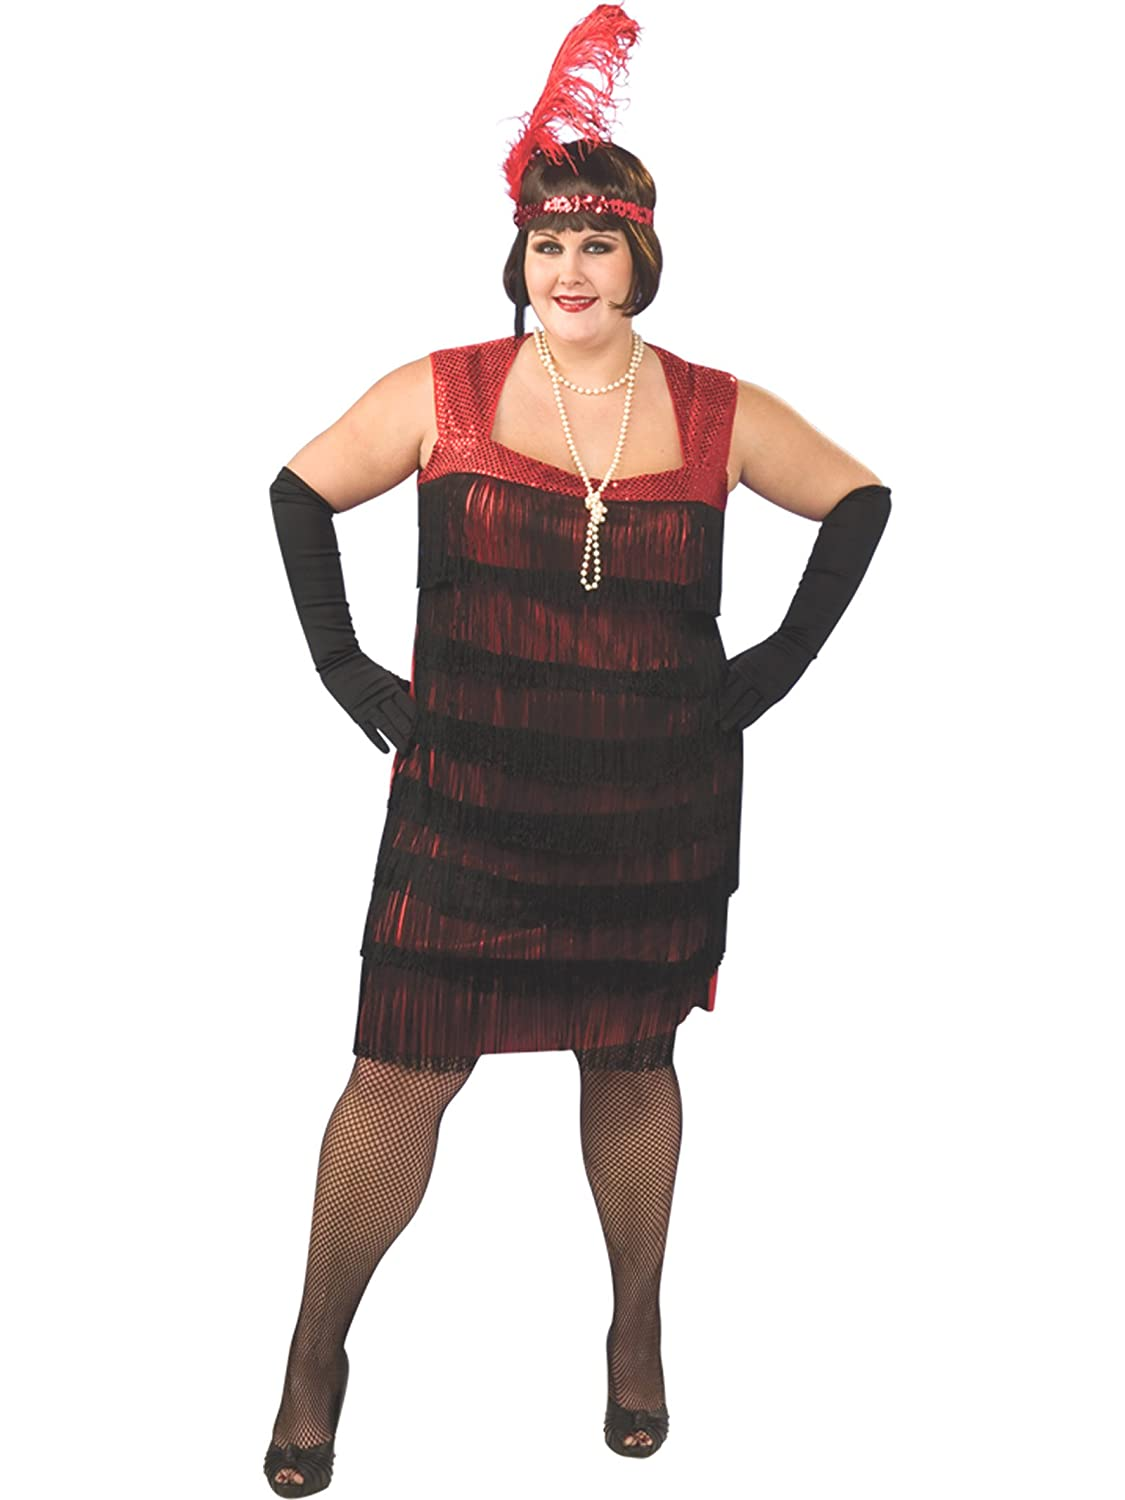 Flapper Costume Plus Size 1920u0027s Dress Dancer Womens Theatrical Costume at Amazon Womenu0027s Clothing store Adult Sized Costumes  sc 1 st  Amazon.com : costume plus size women  - Germanpascual.Com